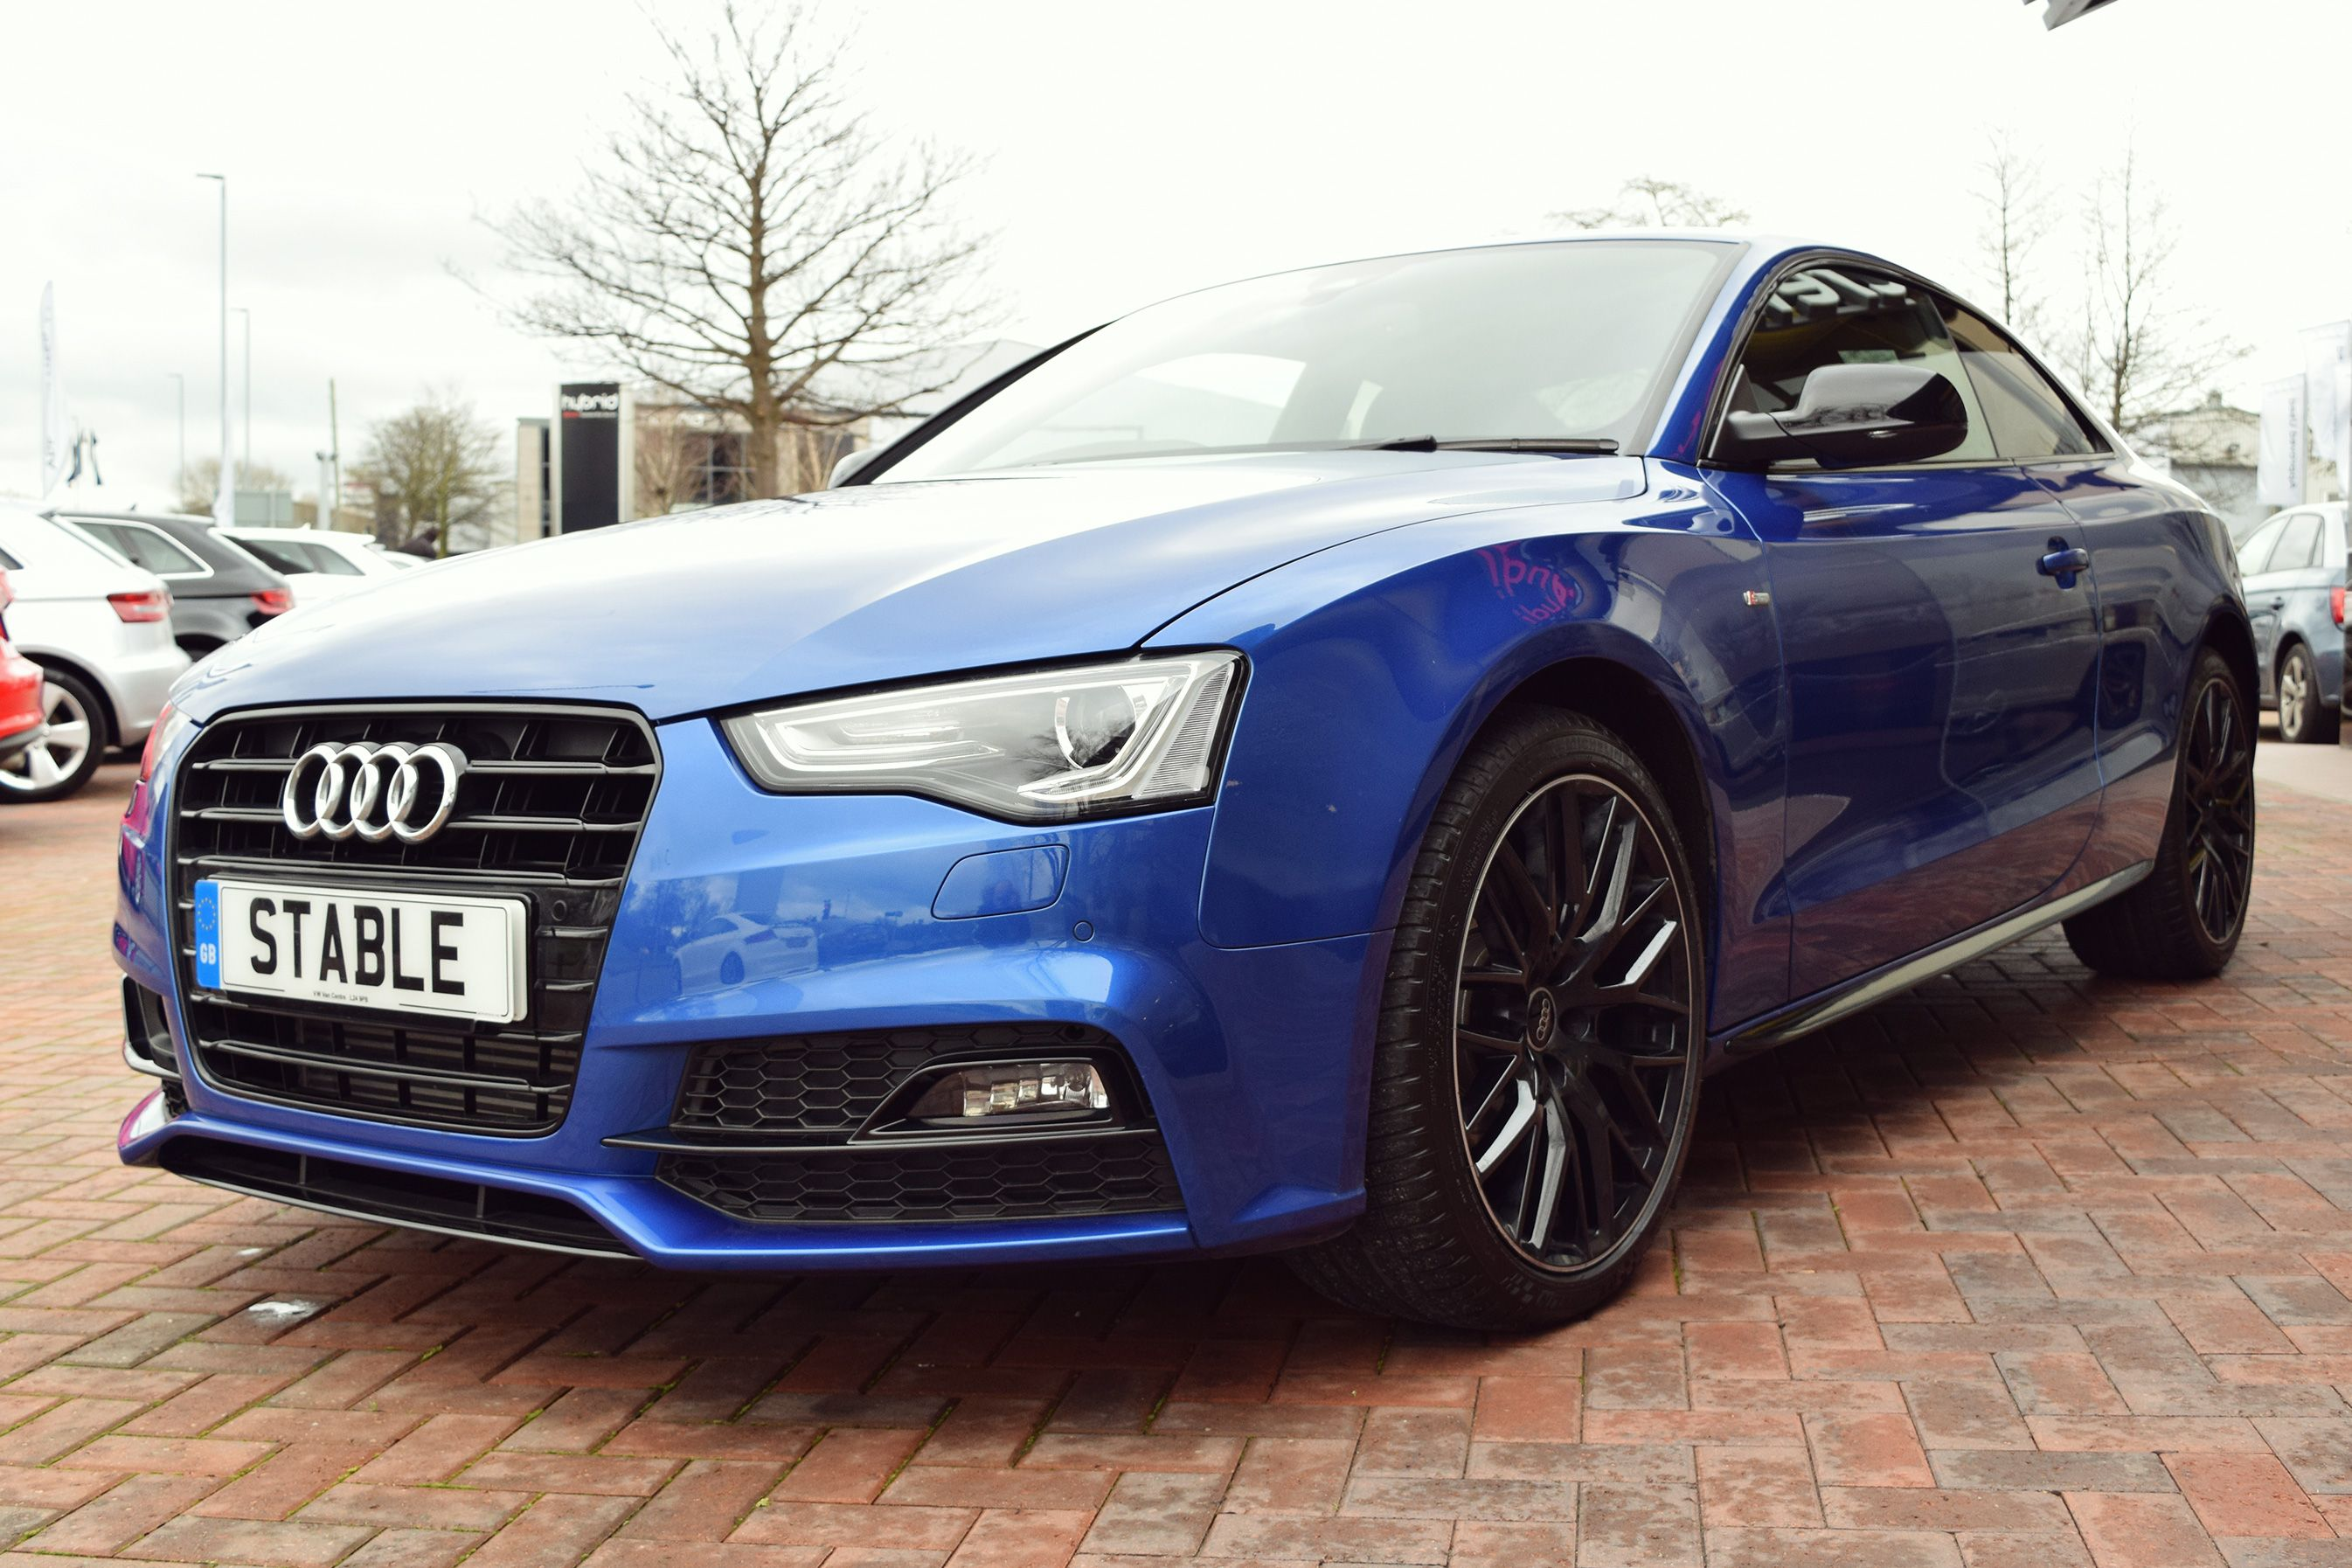 Audi A4 Coupe 2016 Audi A5 Coupe Black Edition Plus In Sepang Blue Cars Audi